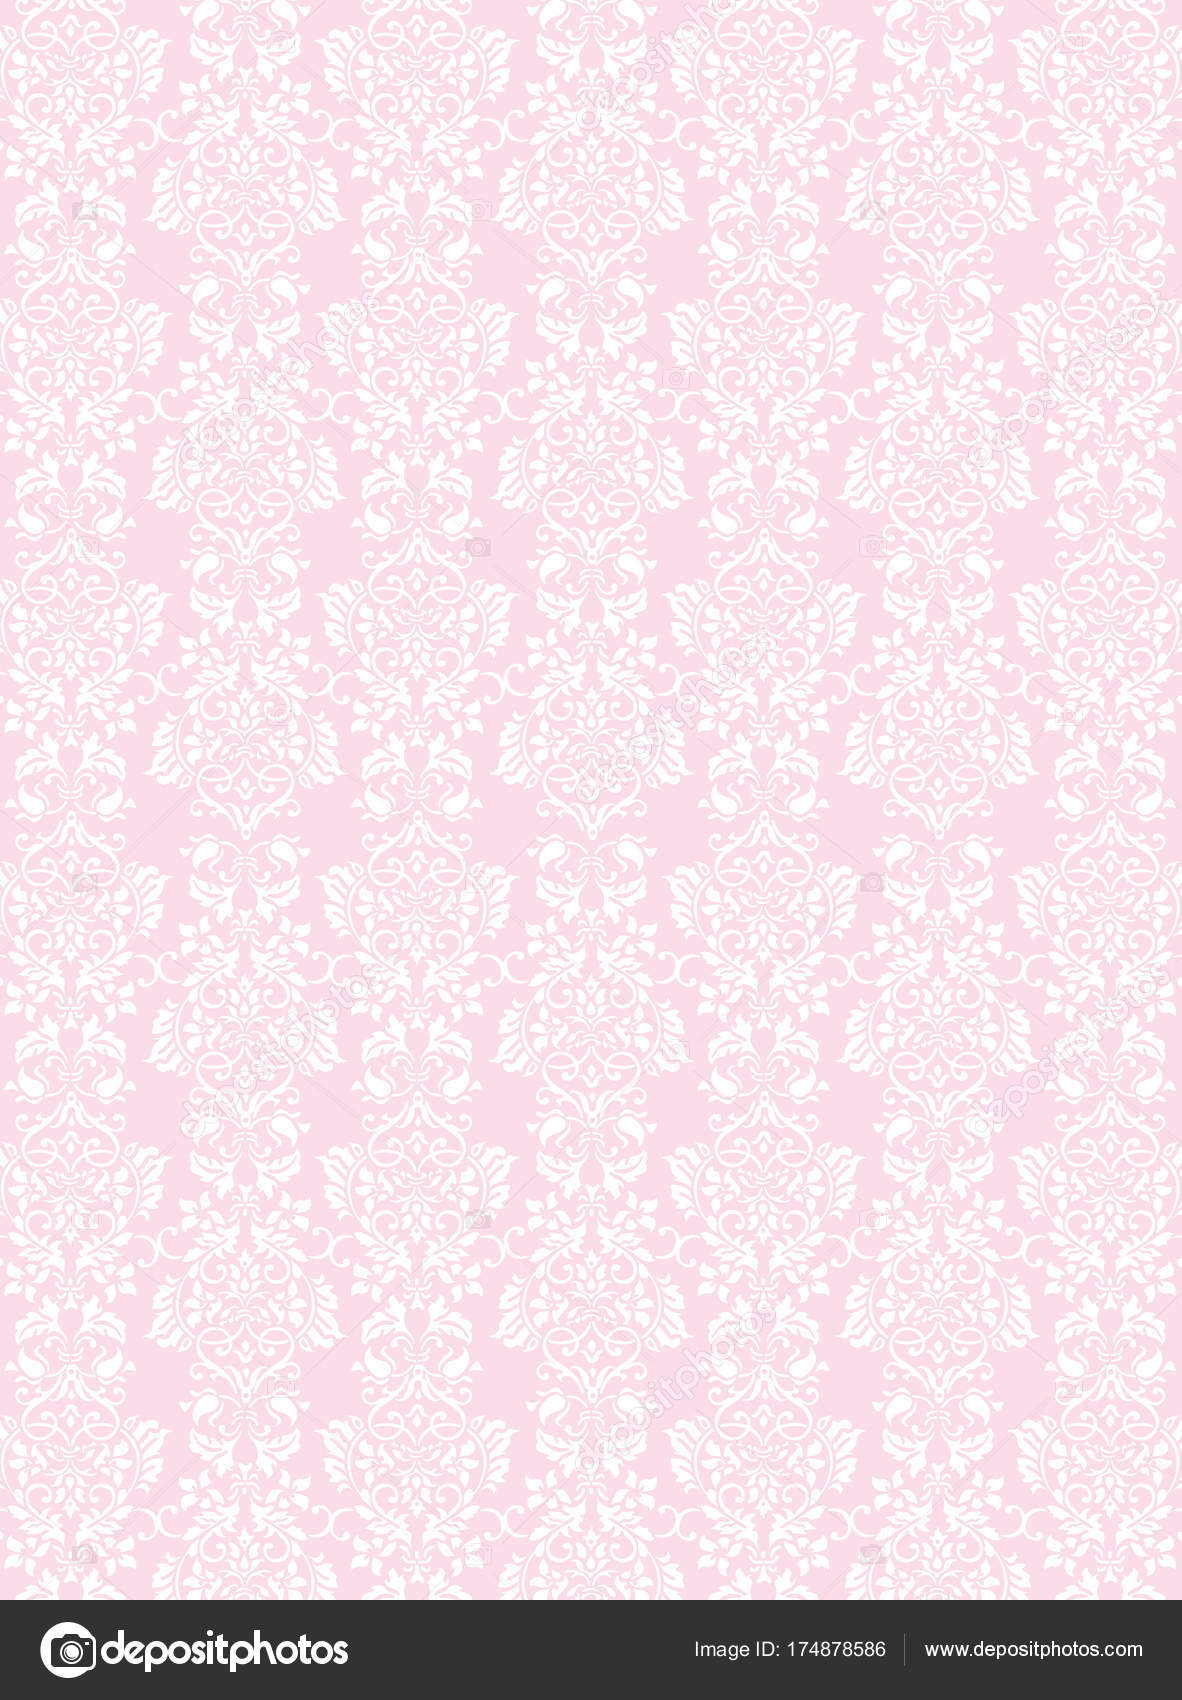 A3 Size Elegant White Flowers Pattern Textured Pink Wallpaper Background Vector By Cougarsan